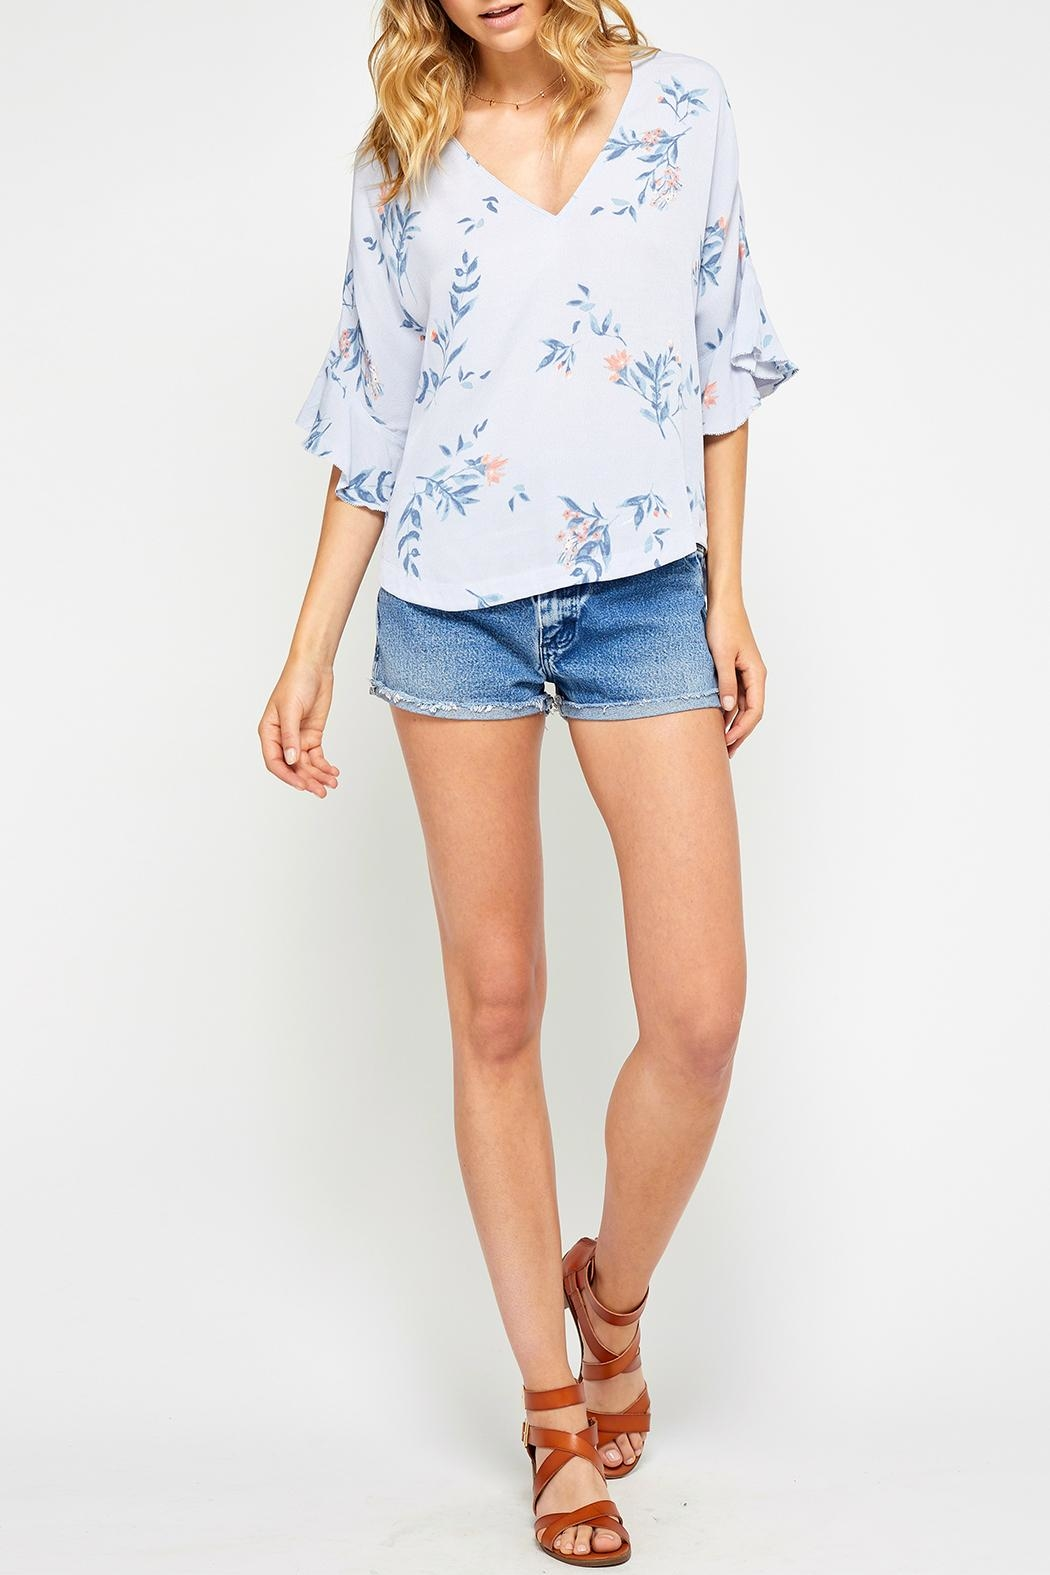 Gentle Fawn Ruffle Sleeve Top - Front Cropped Image